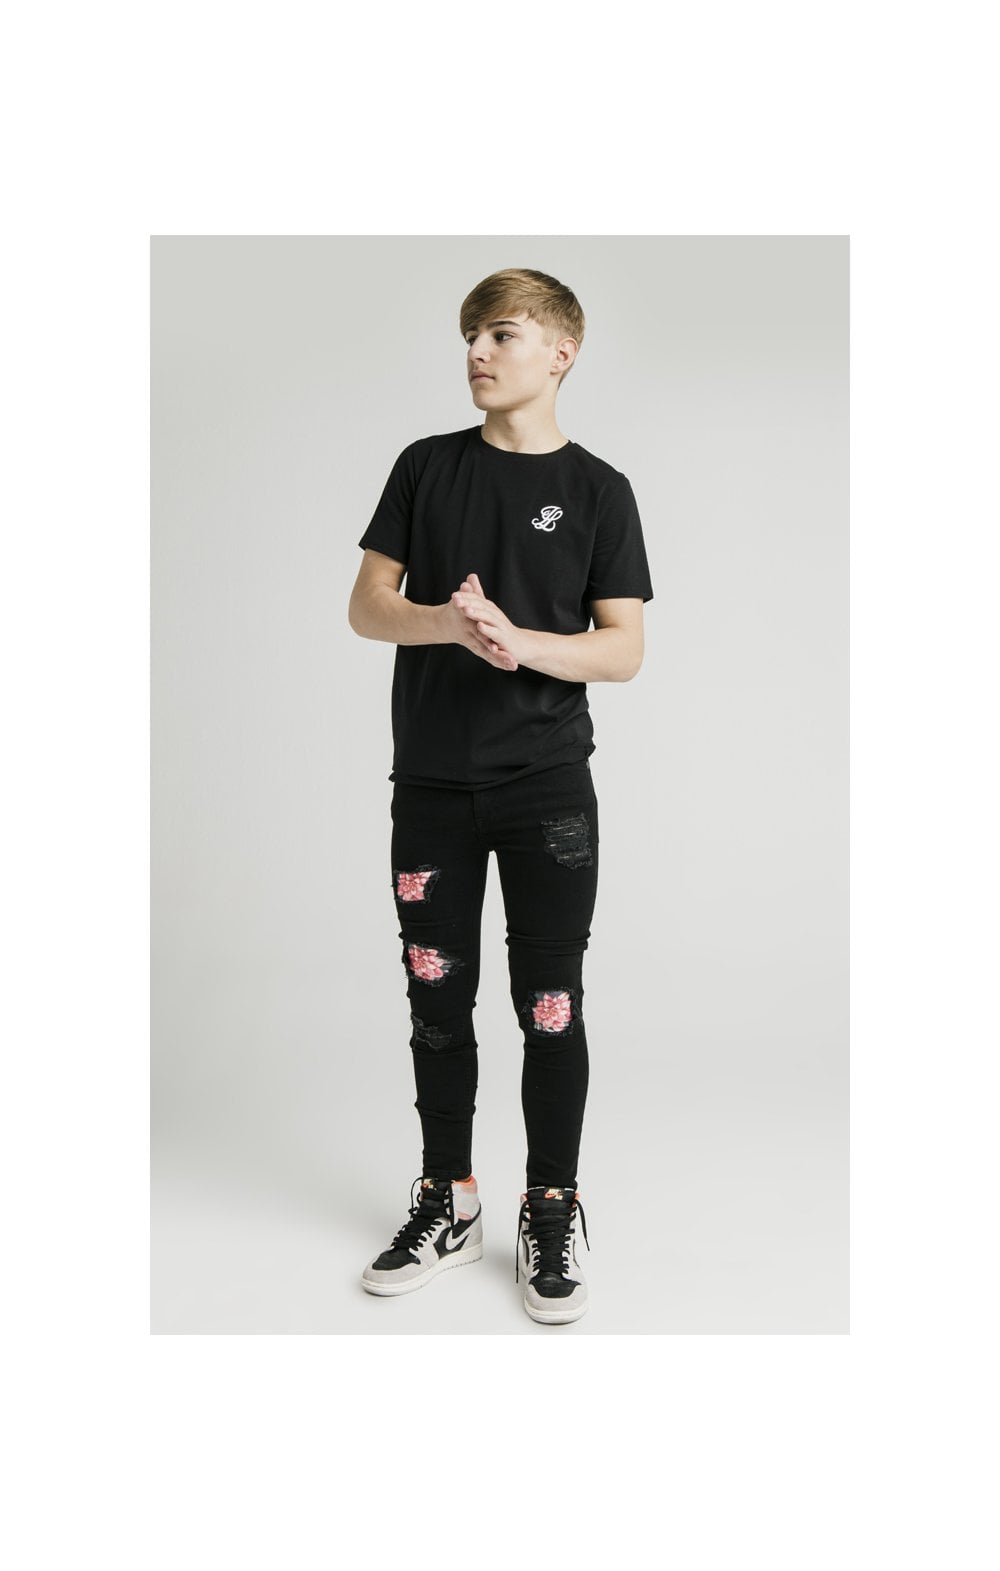 Illusive London S/S Core Tee - Black (5)